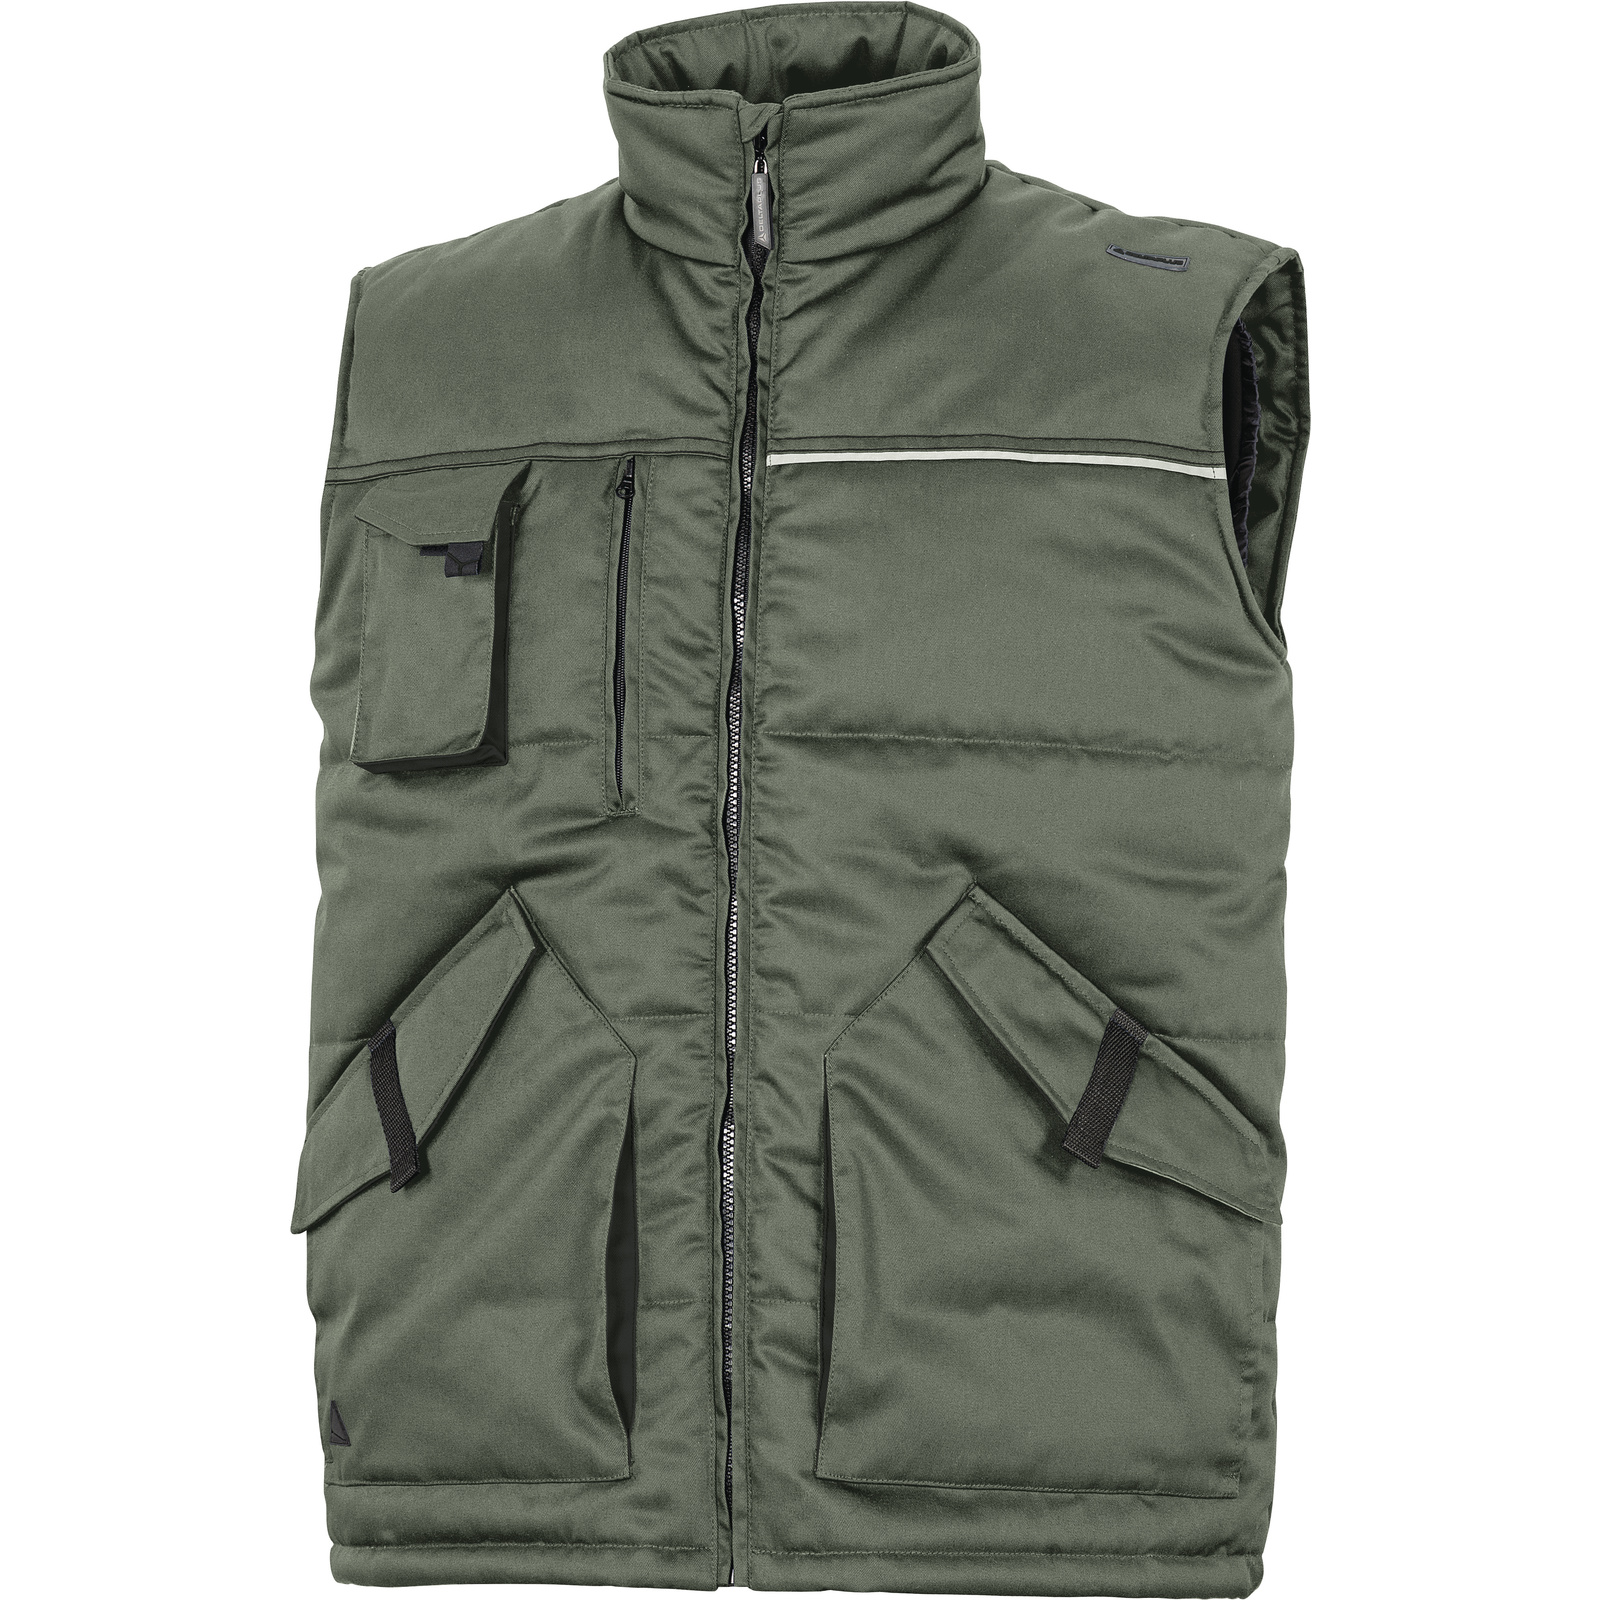 Gilet chaud multipoches